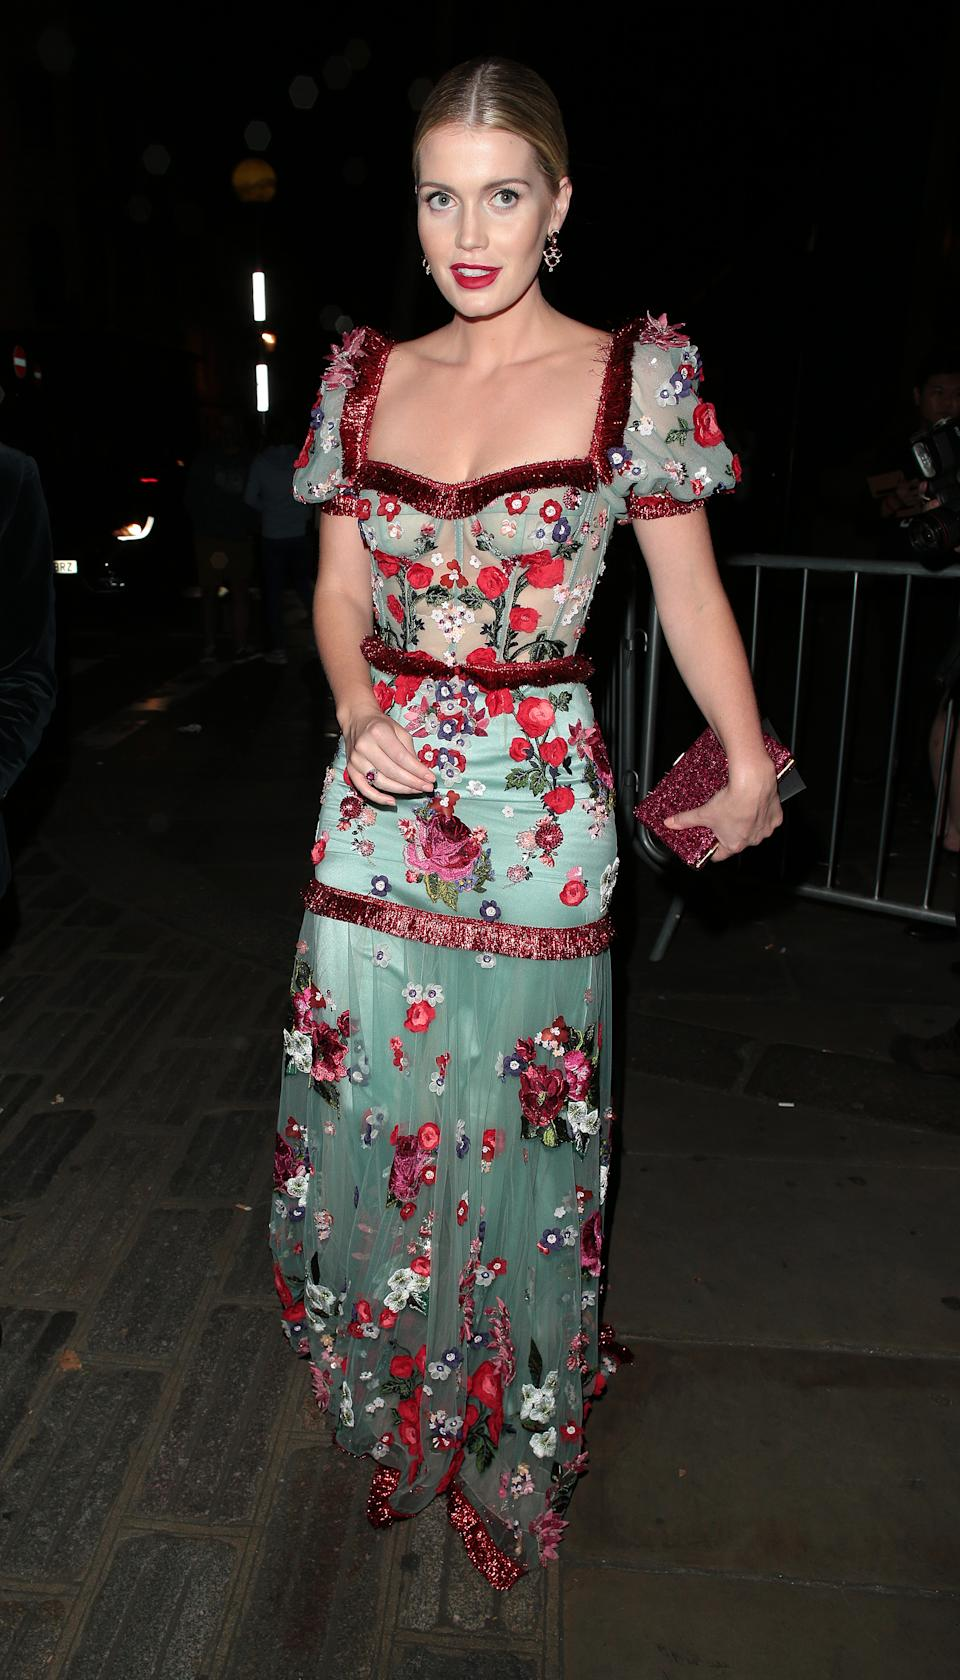 Lady Kitty Spencer seen attending the Fashion For Relief gala event during London Fashion Week [Photo: Getty Images]